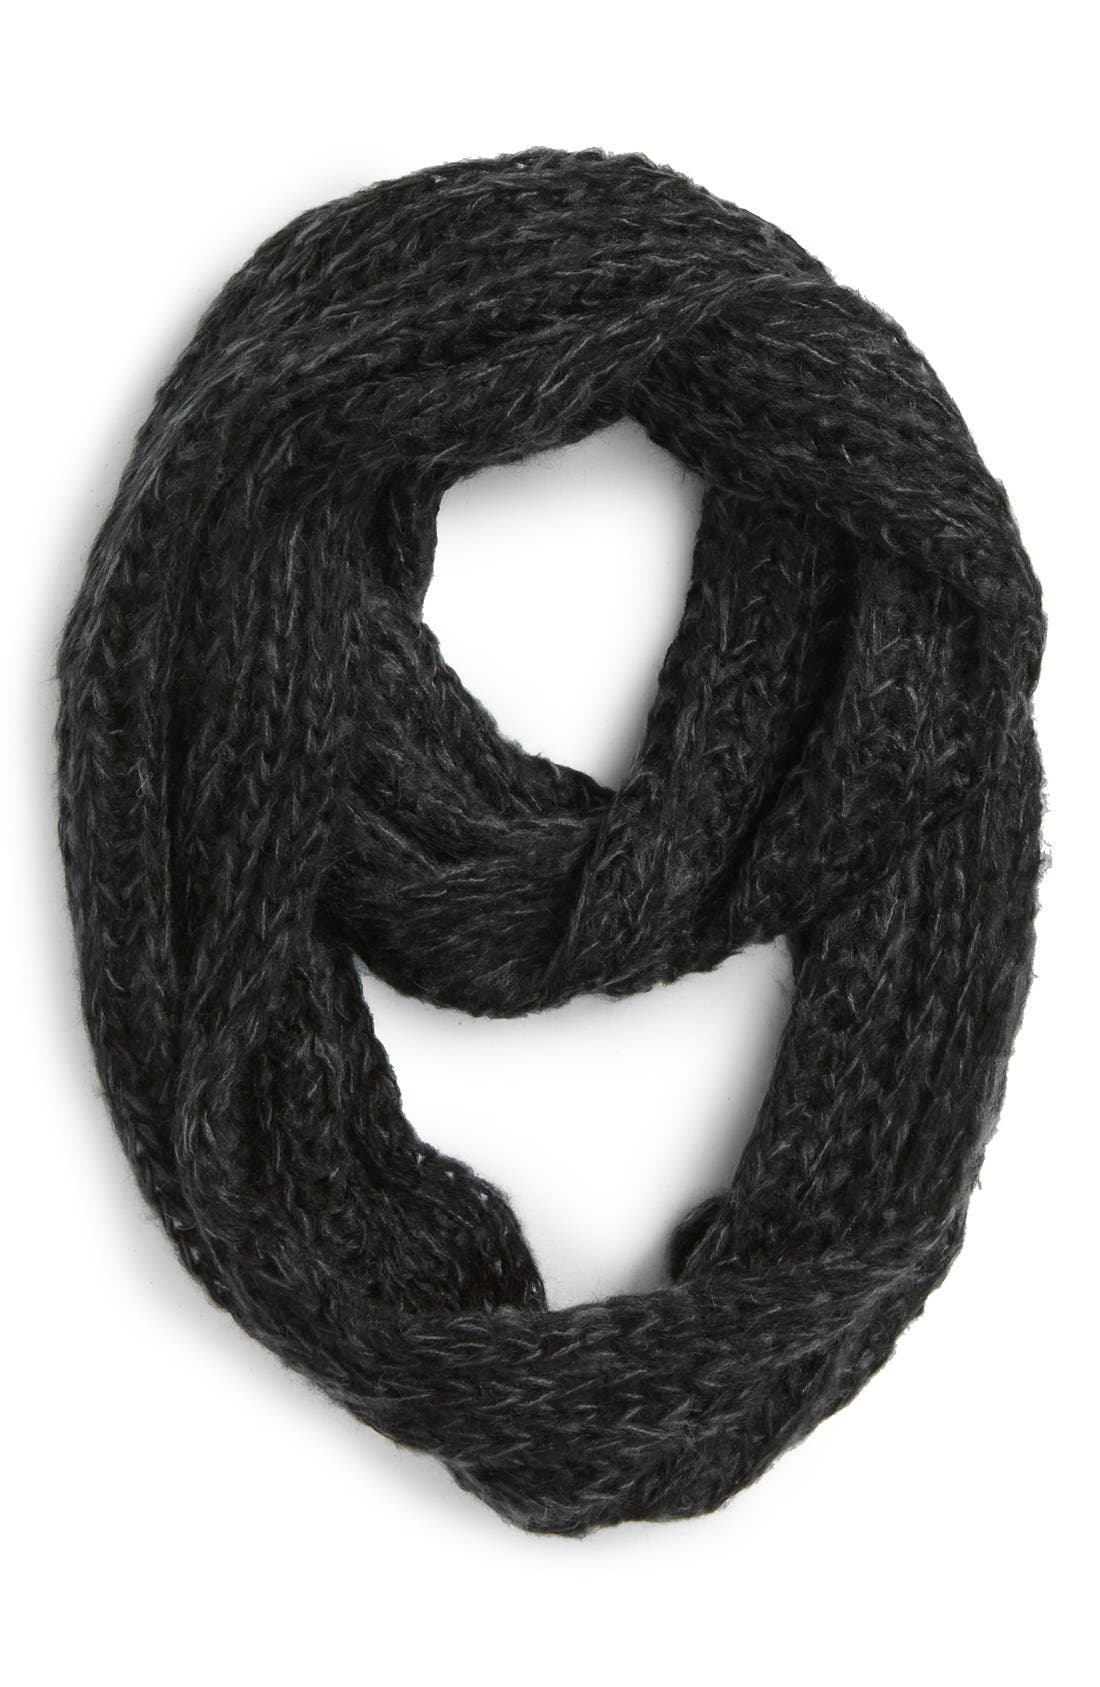 Alternate Image 1 Selected - BCBGeneration 'Scribble Loop' Knit Infinity Scarf